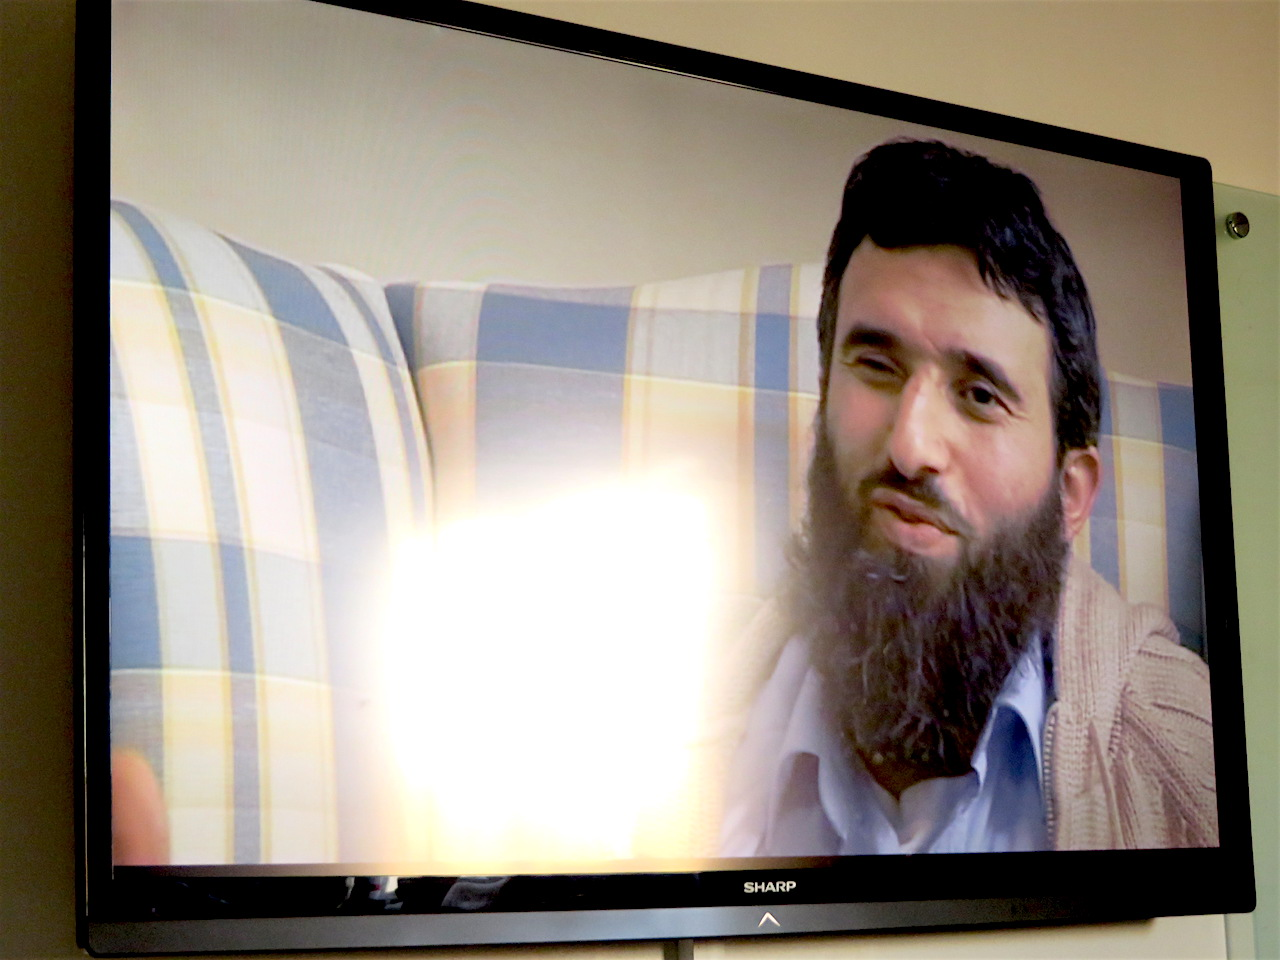 A screenshot of former Guantanamo prisoner Omar Deghayes in 'Outside the Law: Stories from Guantanamo', shown at the University of Westminster on November 17, 2017 (Photo: Andy Worthington).